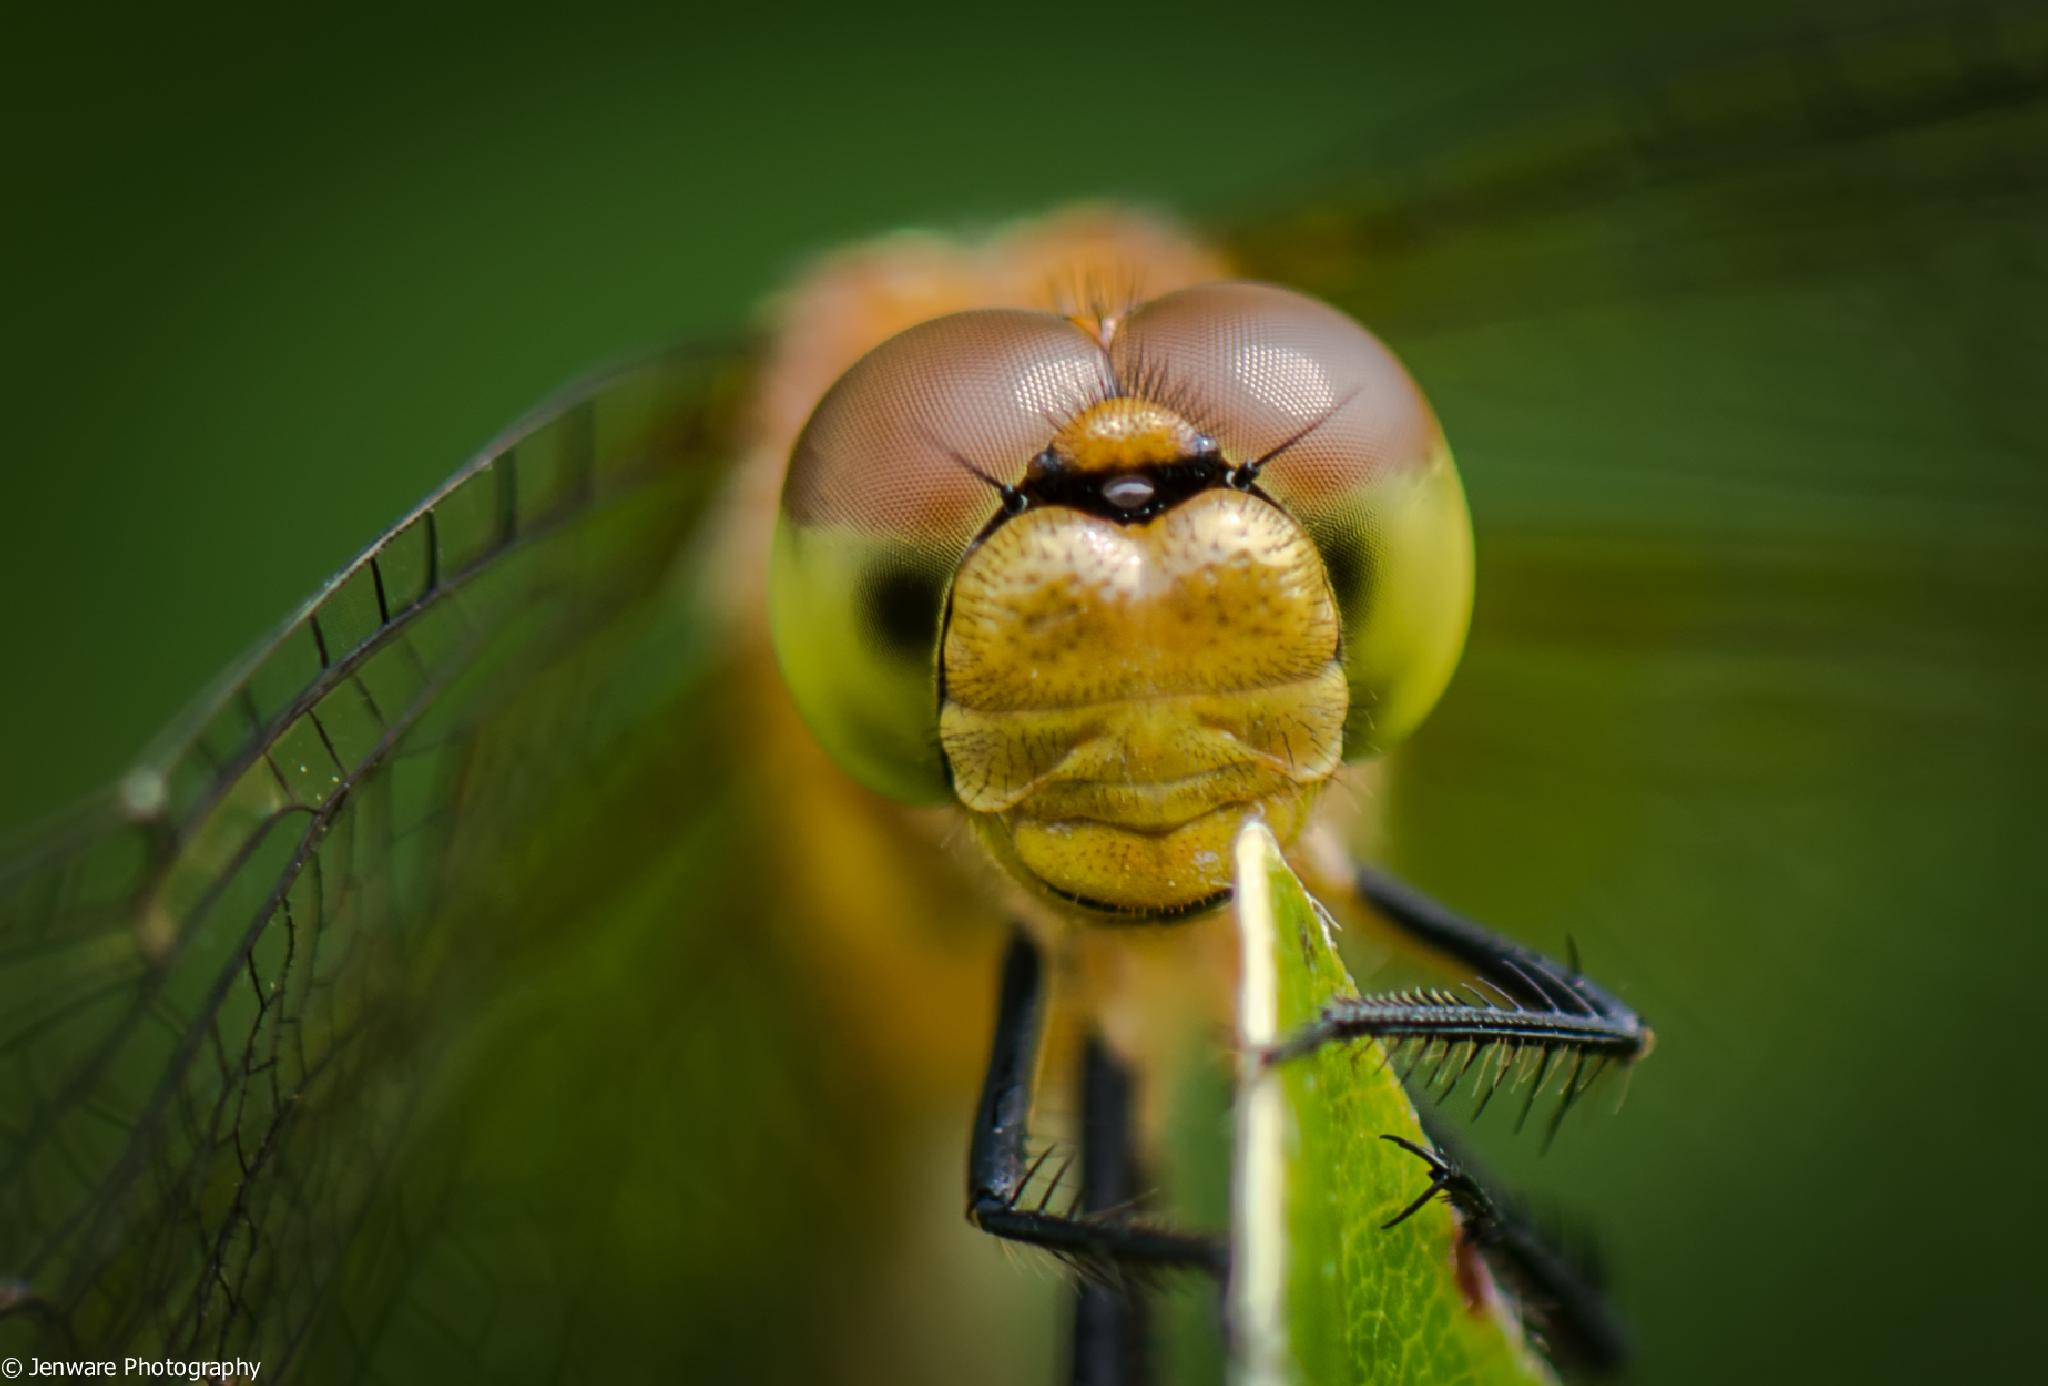 Dragonfly by Jenware Photography